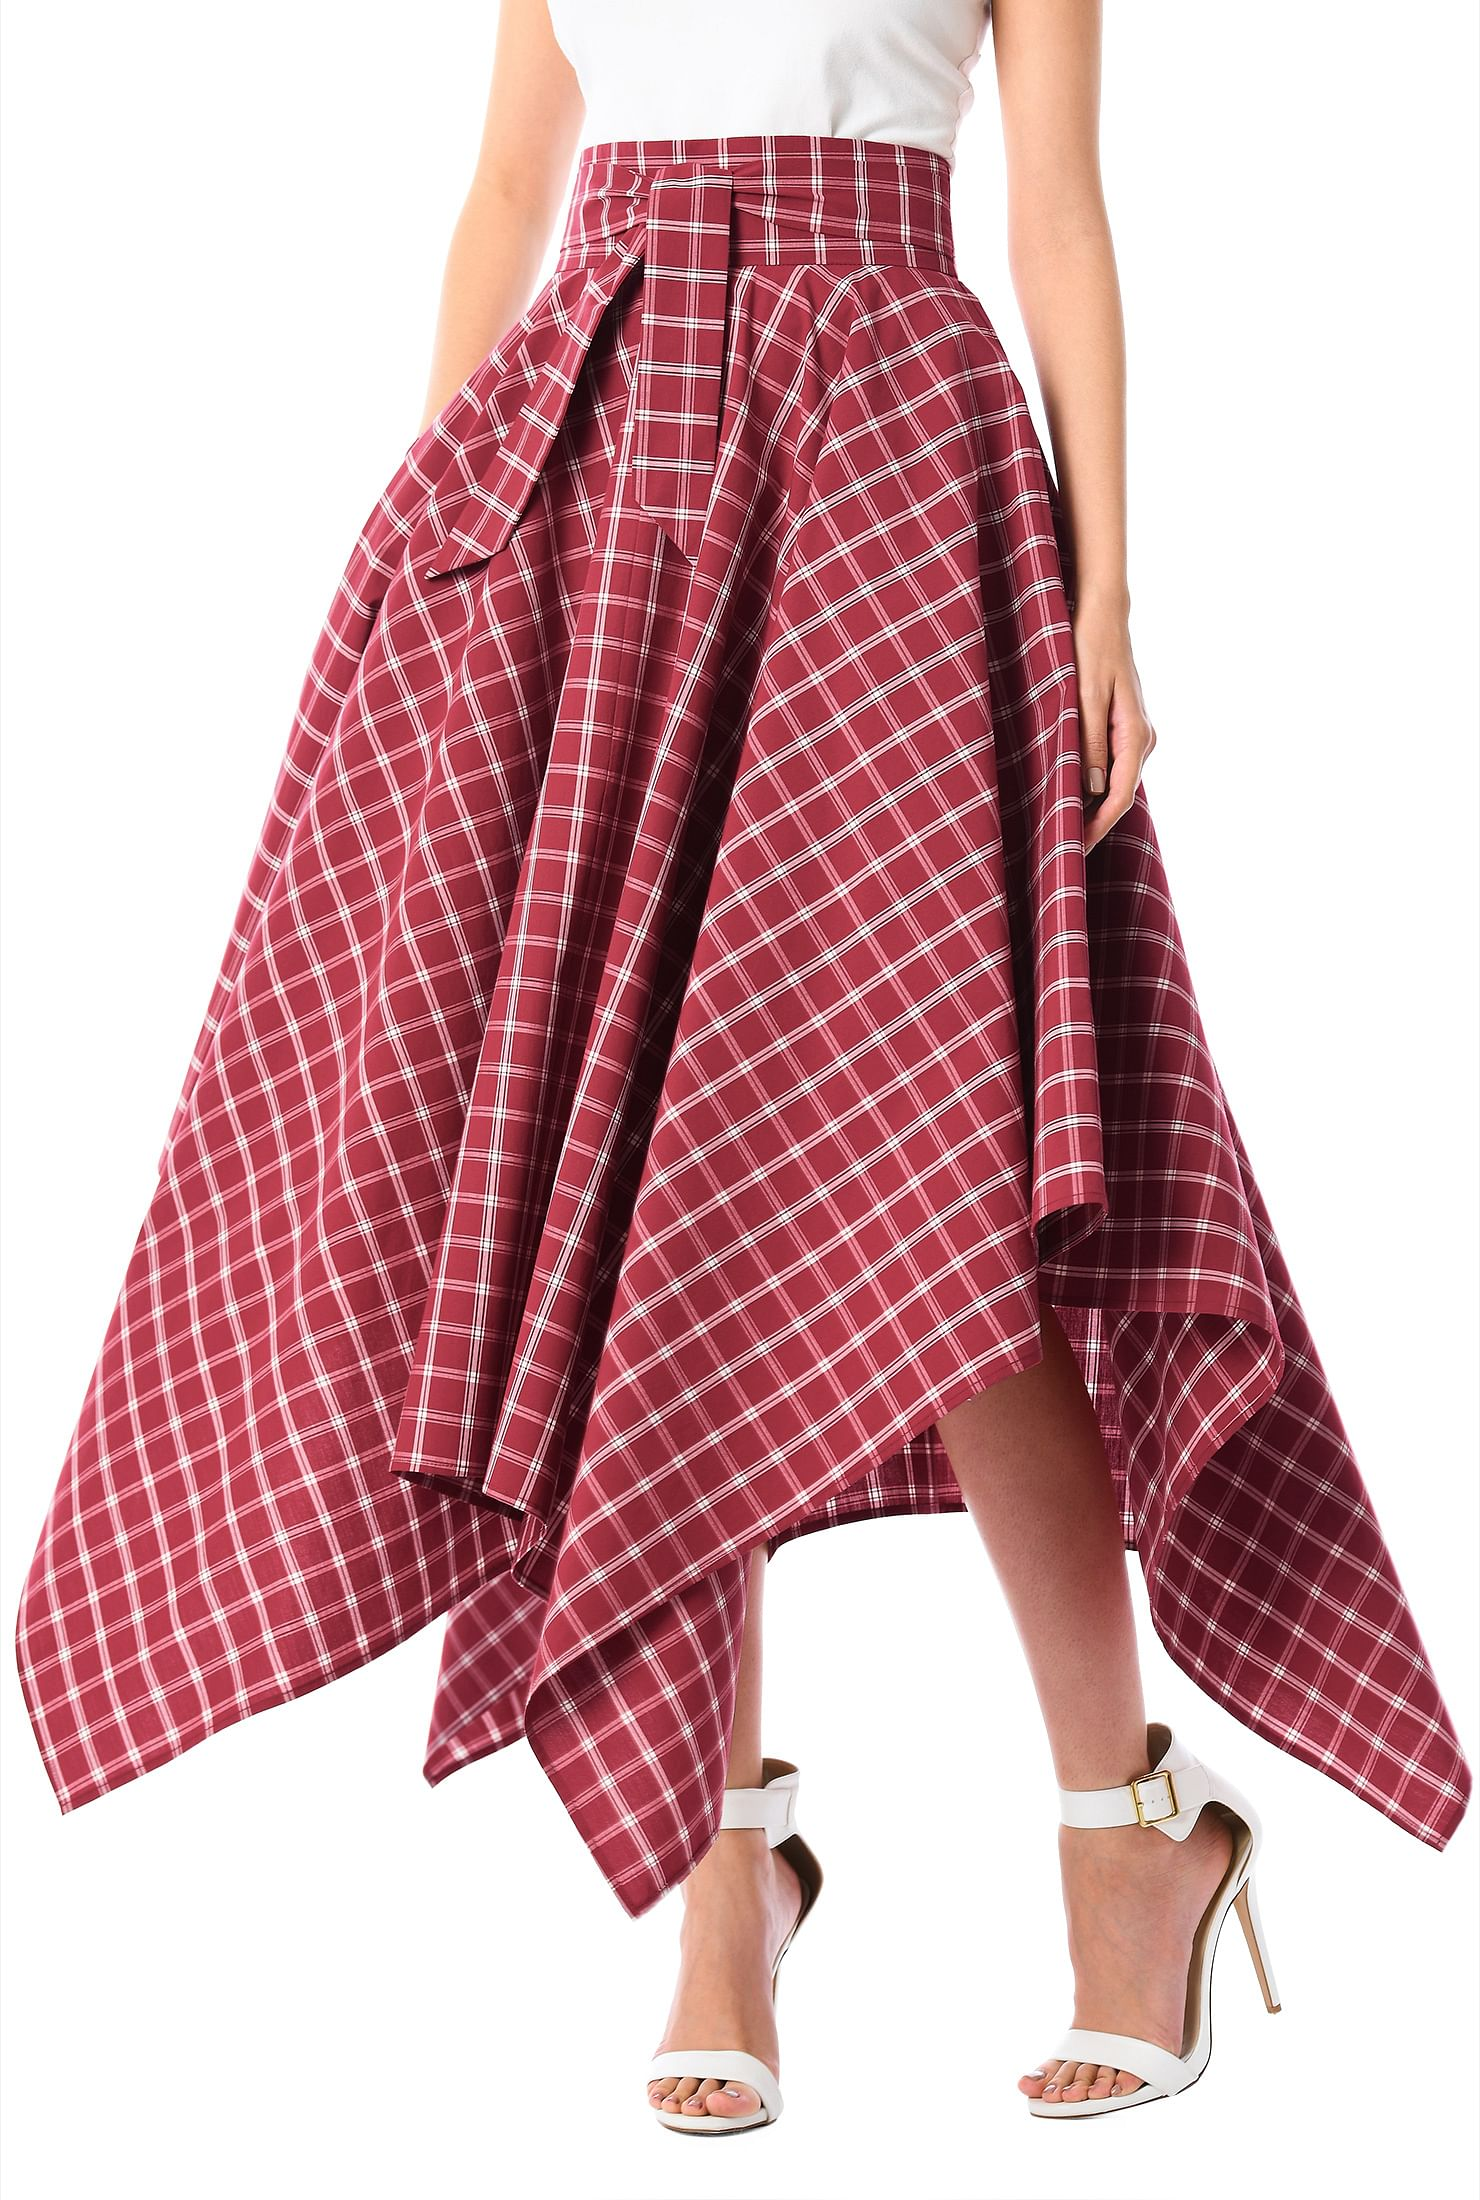 Handkerchief Hem Cotton Check Skirt by Eshakti